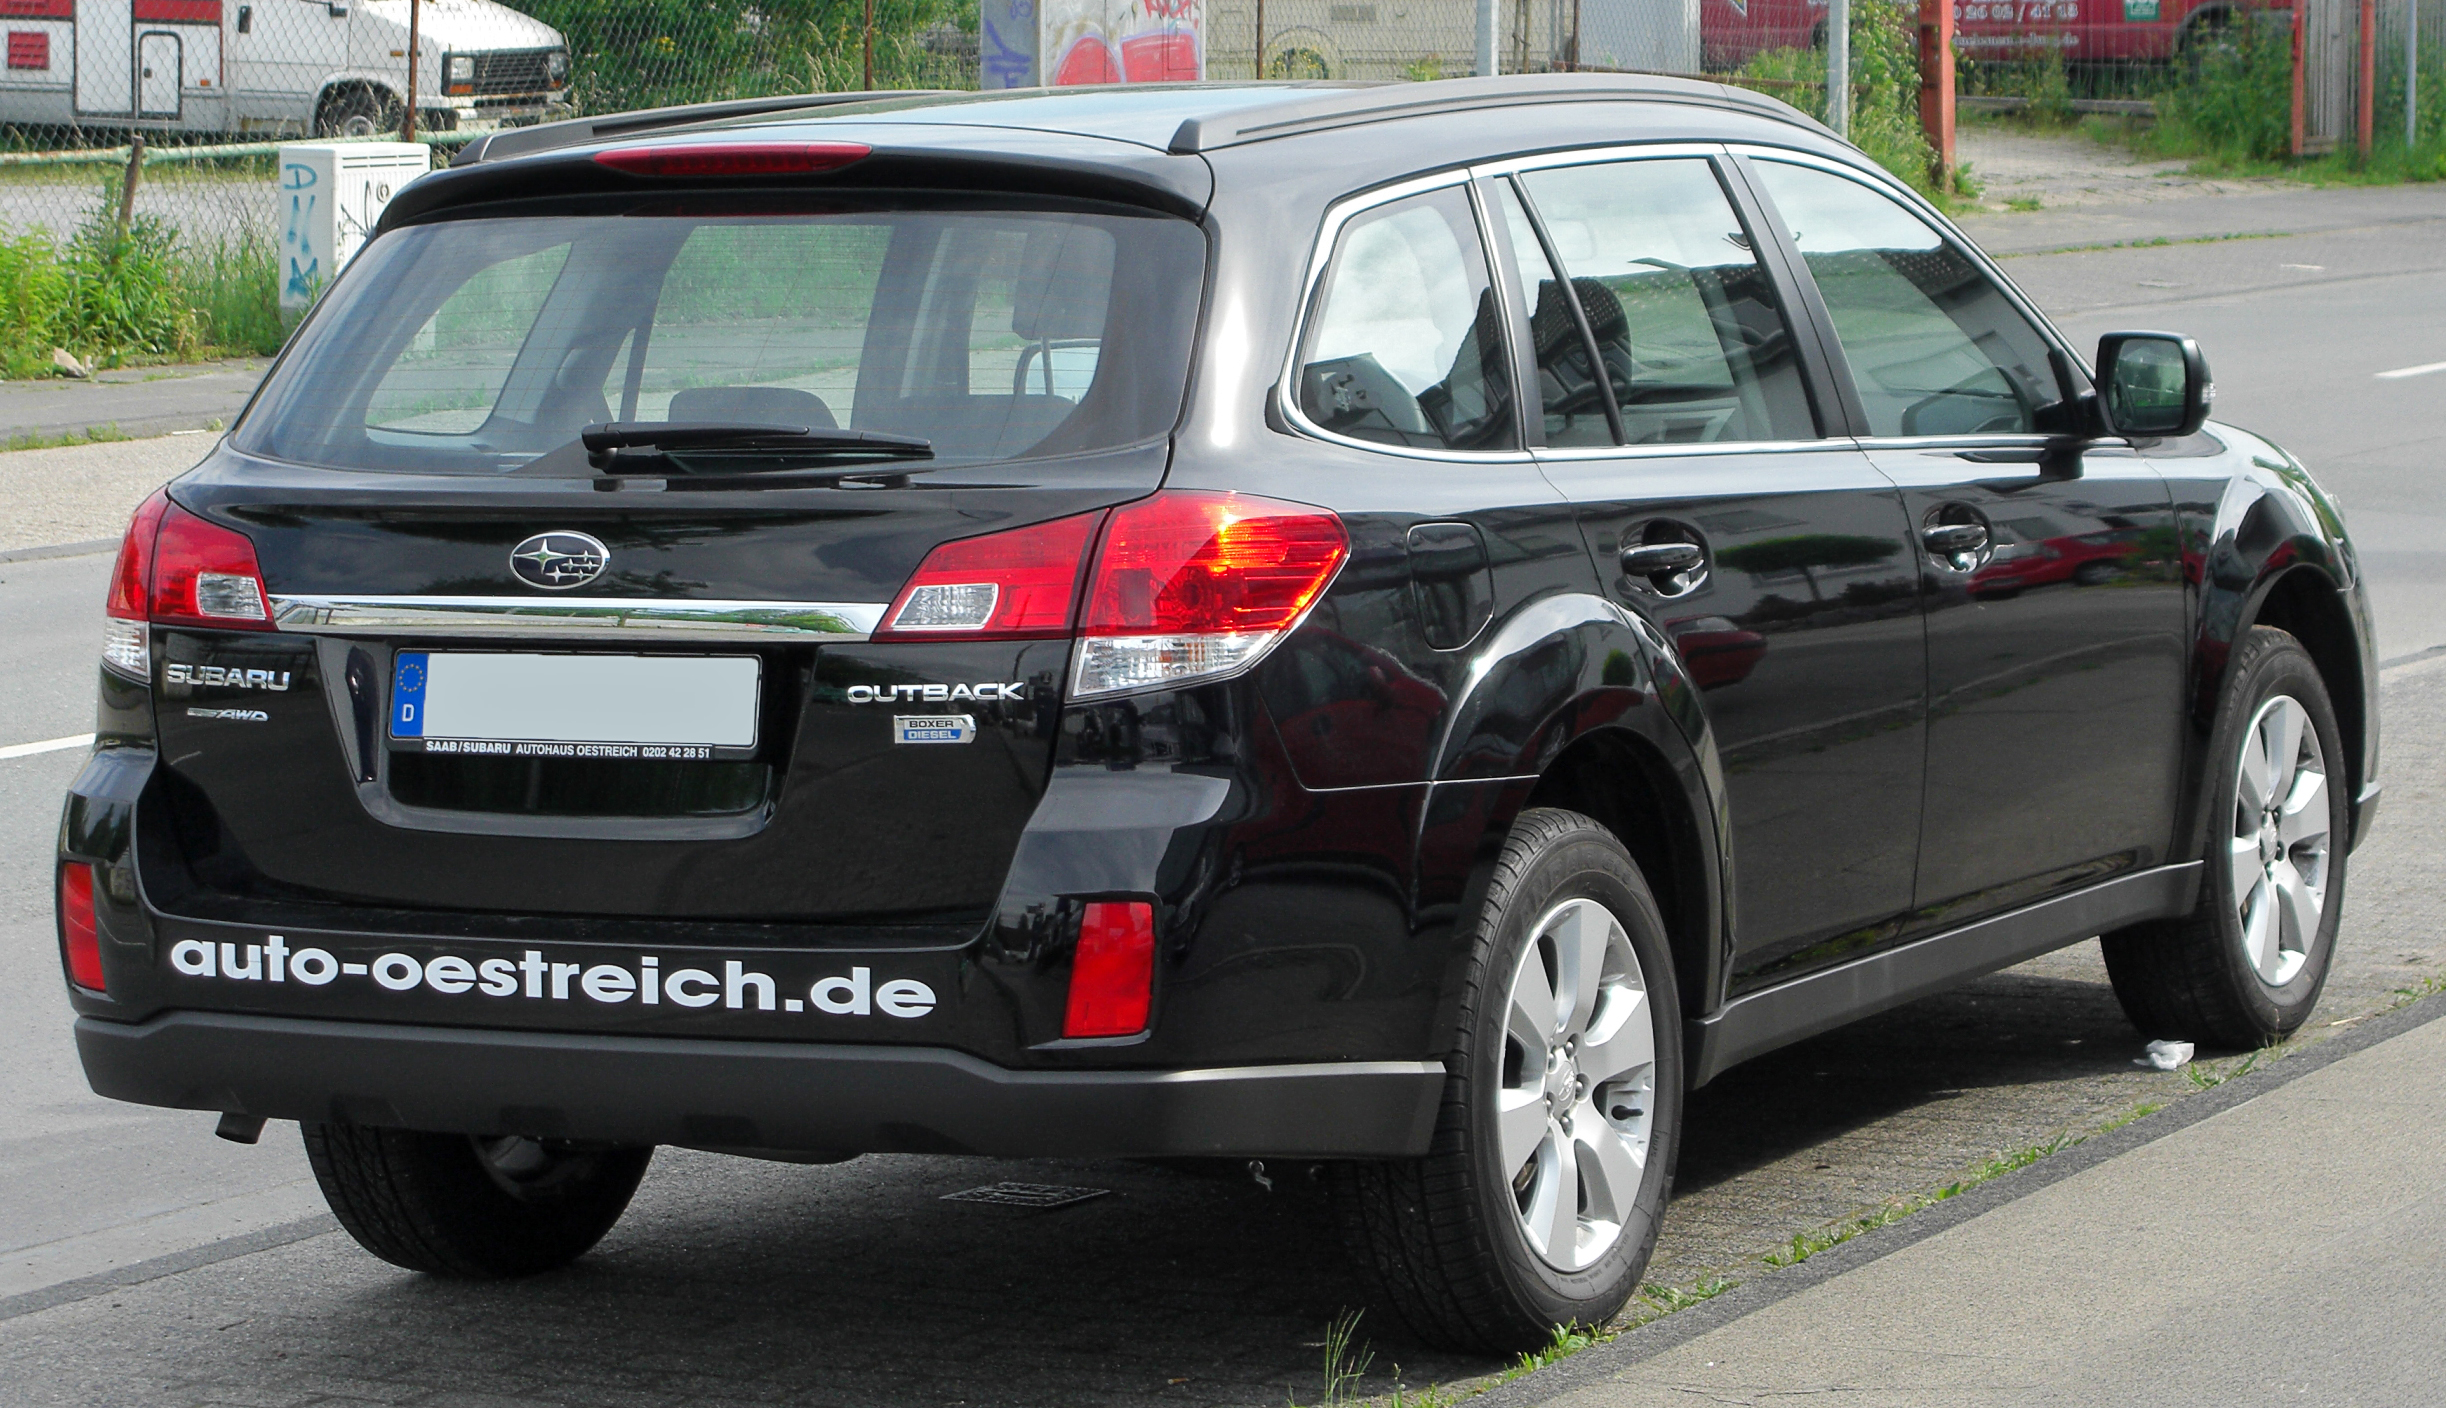 Description Subaru Outback IV 2.0D AWD Active rear 20100613.jpg